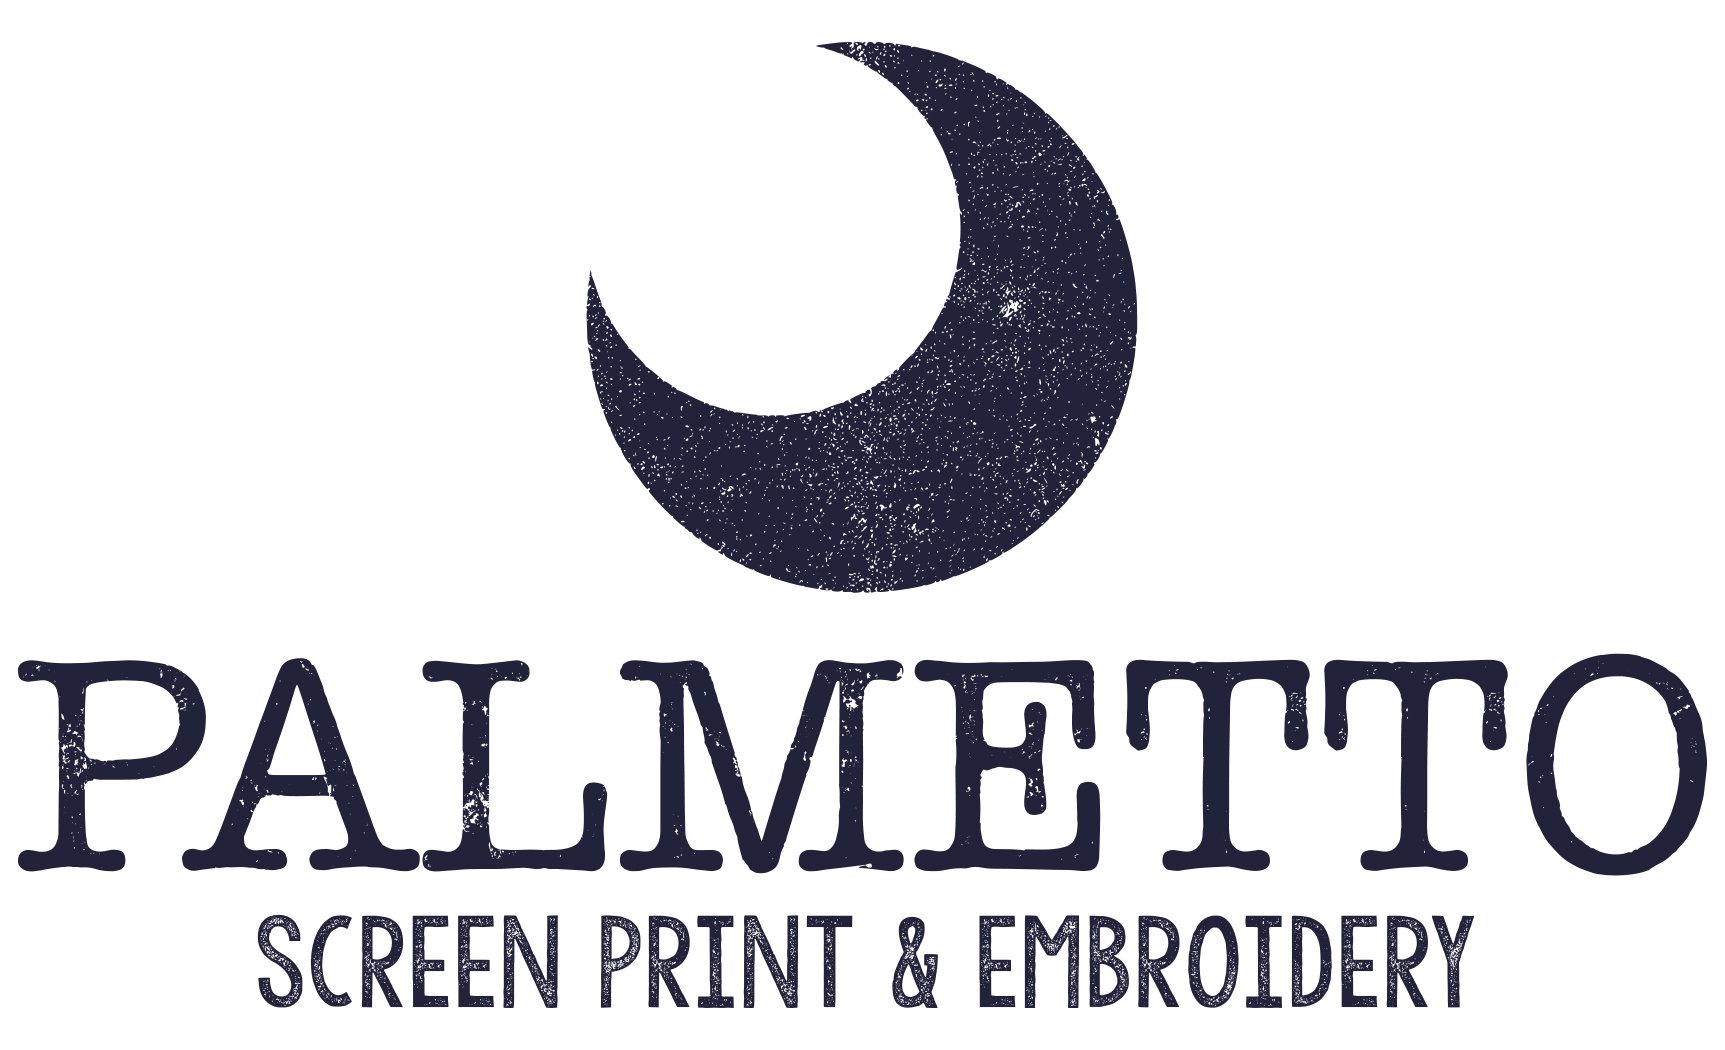 Palmetto Screen Print & Embroidery